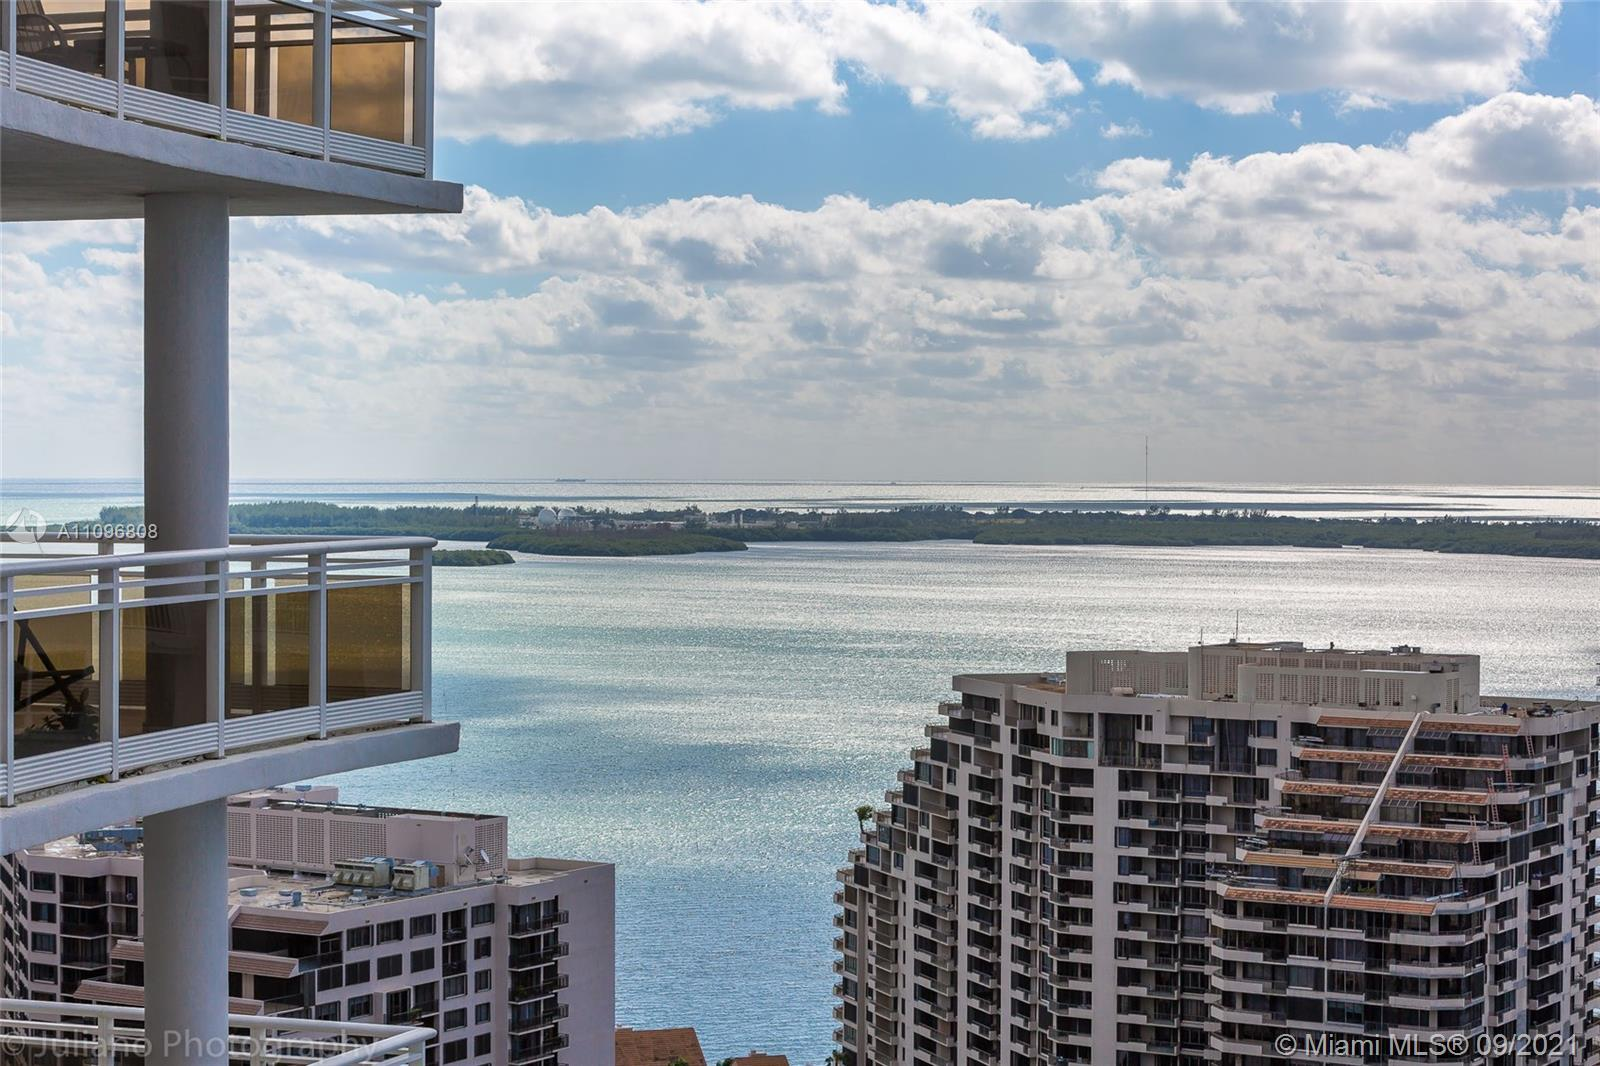 SPECTACULAR UNIT IN THE EXCLUSIVE BRICKELL KEY ISLAND,10' HIGH FLOOR TO CEILING WINDOWS OFFERING 1 B